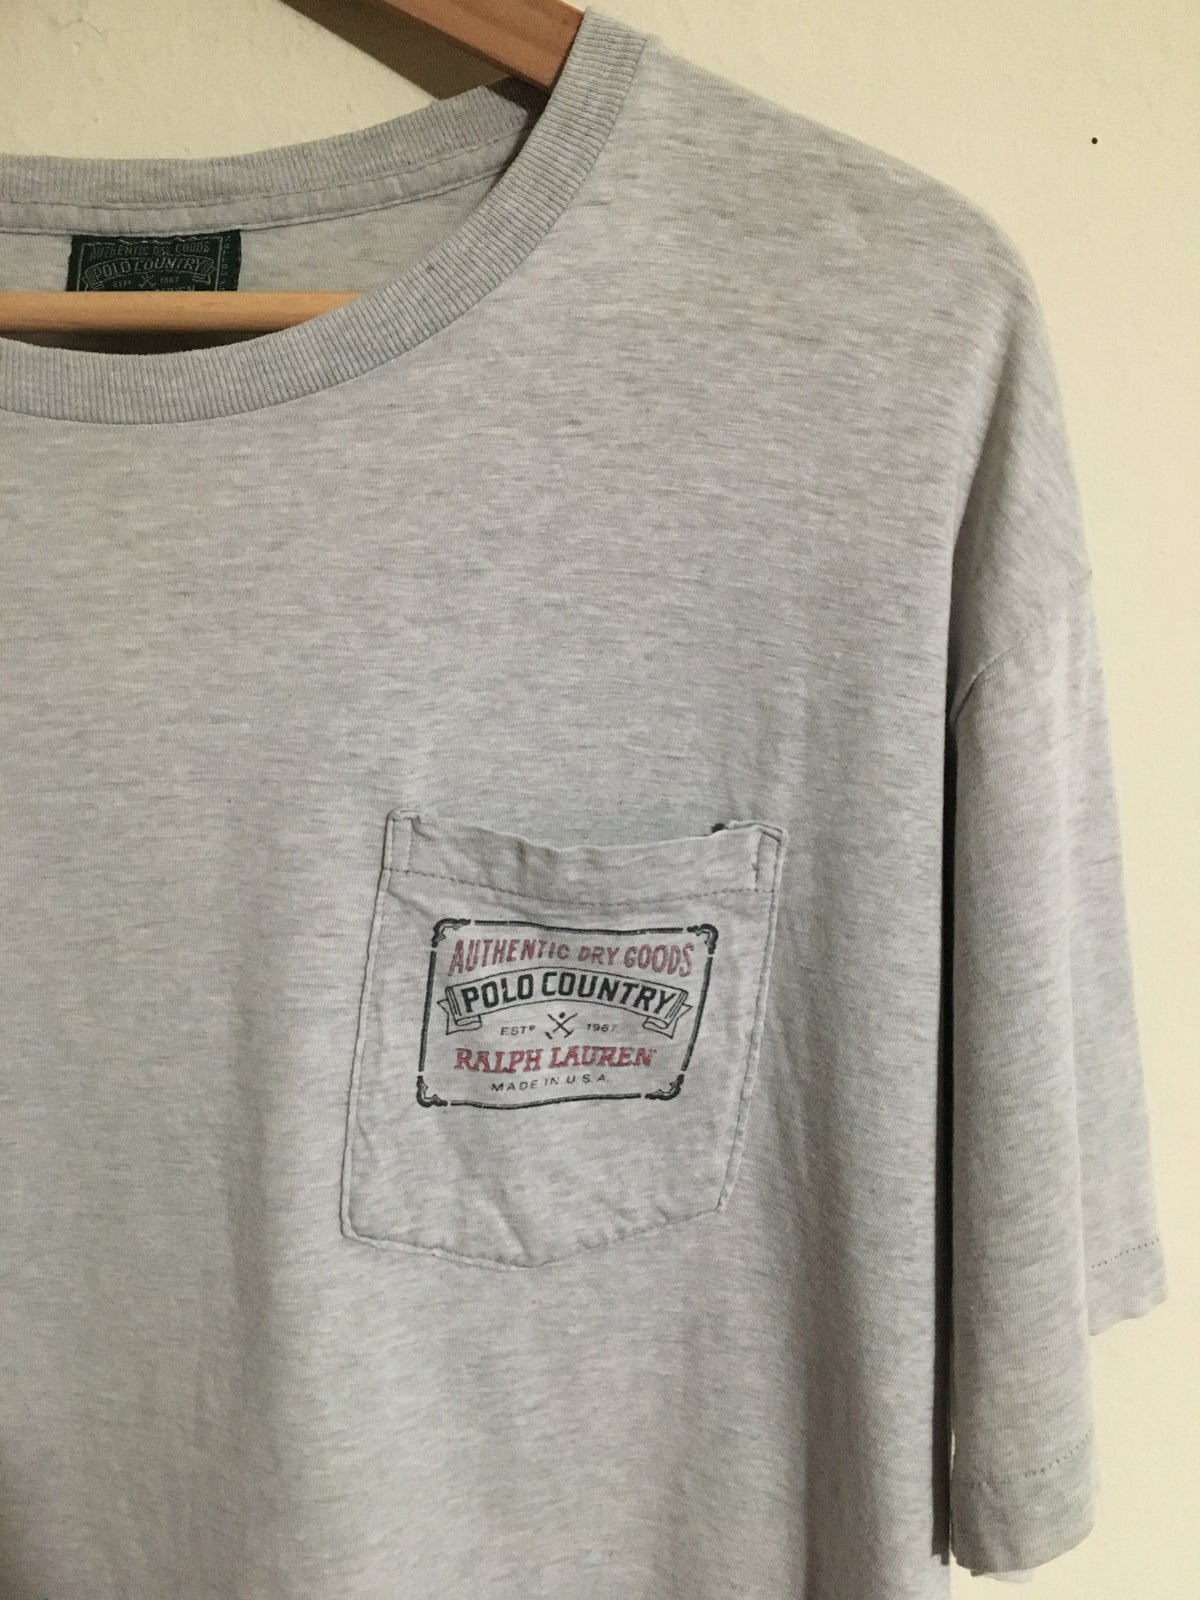 Early 90's Ralph Lauren Polo Country Authentic Dry Goods Pocket Tee